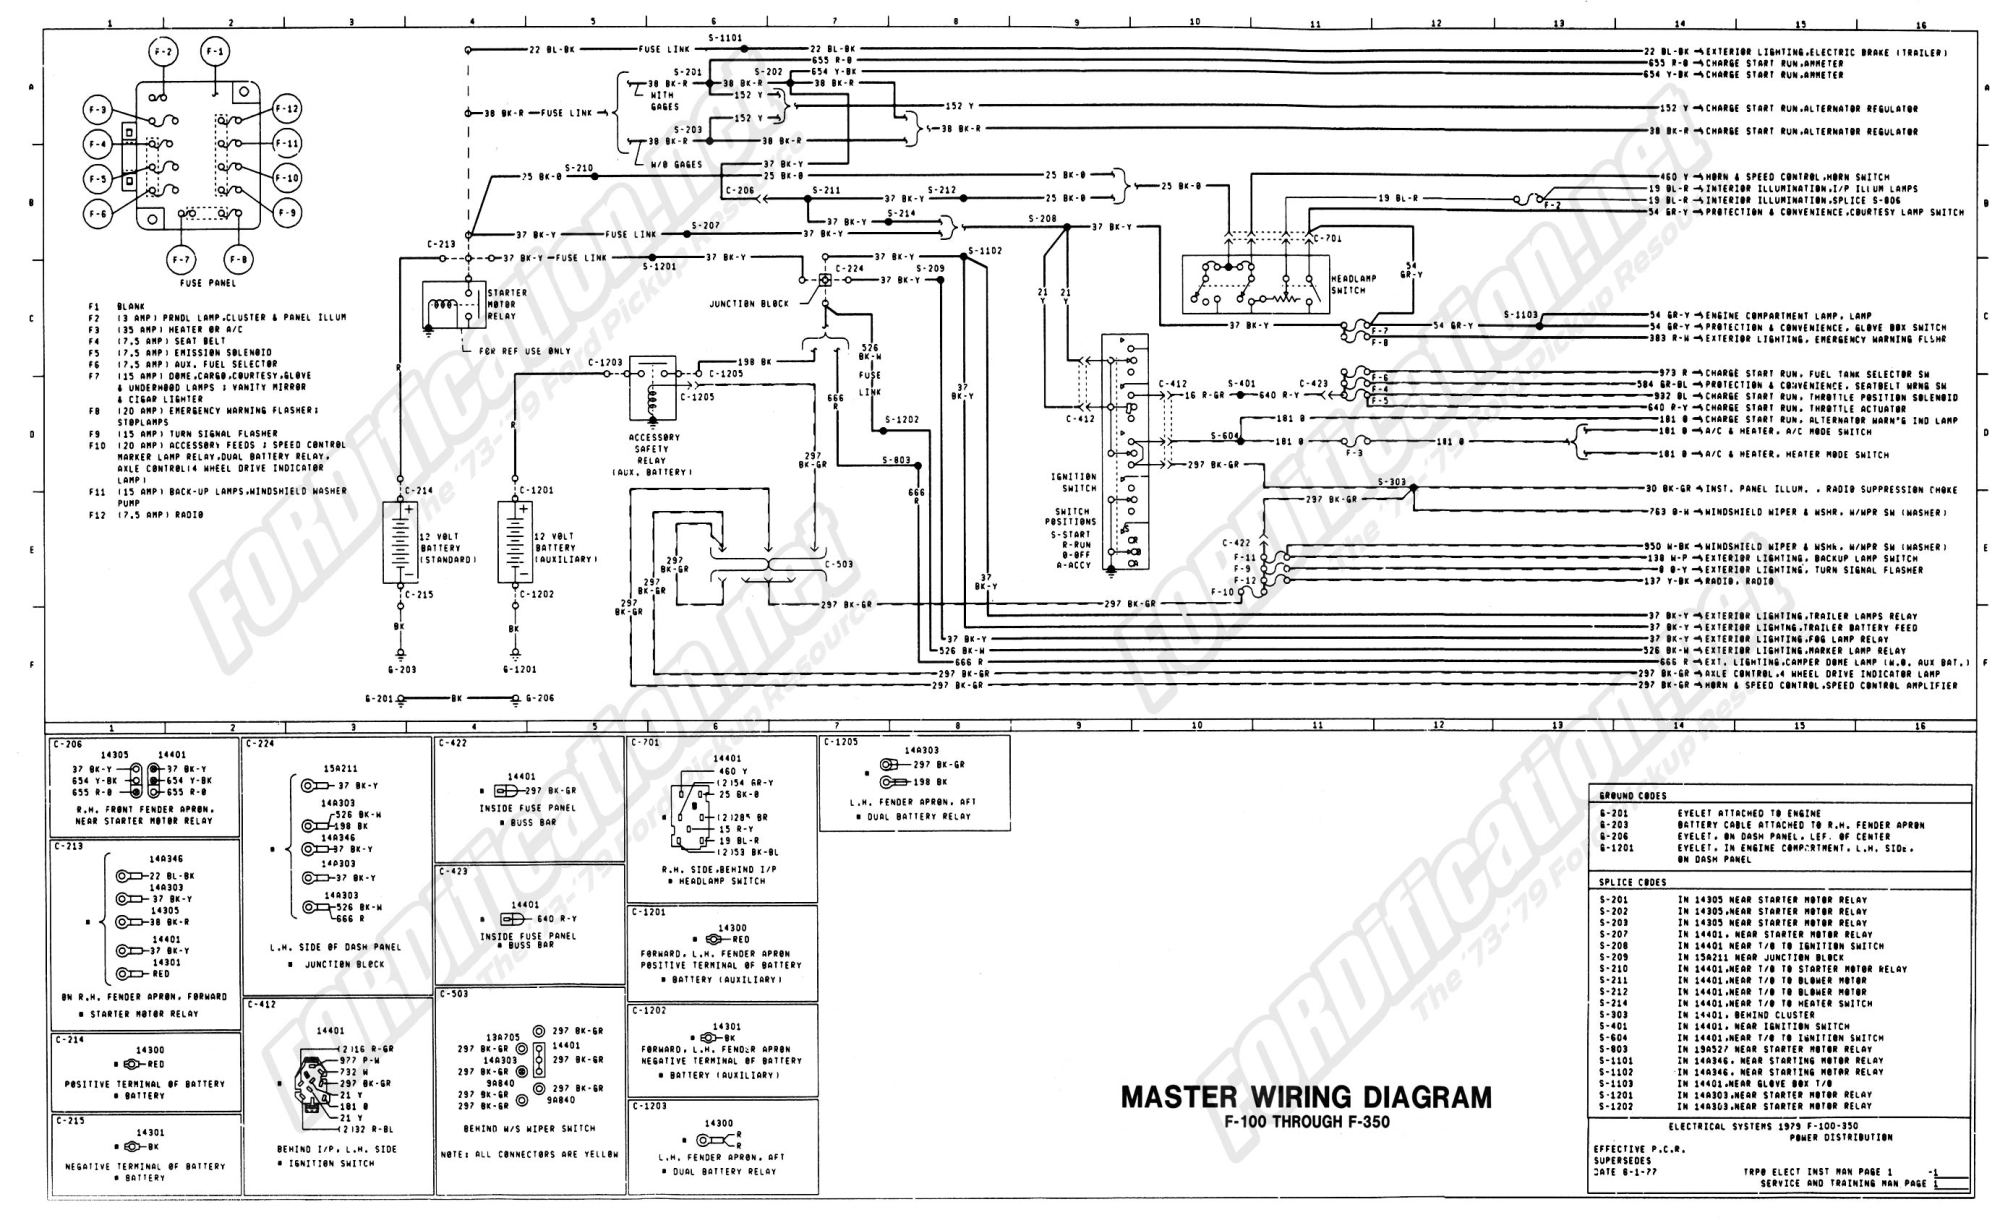 hight resolution of wrg 8765 1970 f100 electric fan relay wiring diagram1970 f100 wiring diagram 18